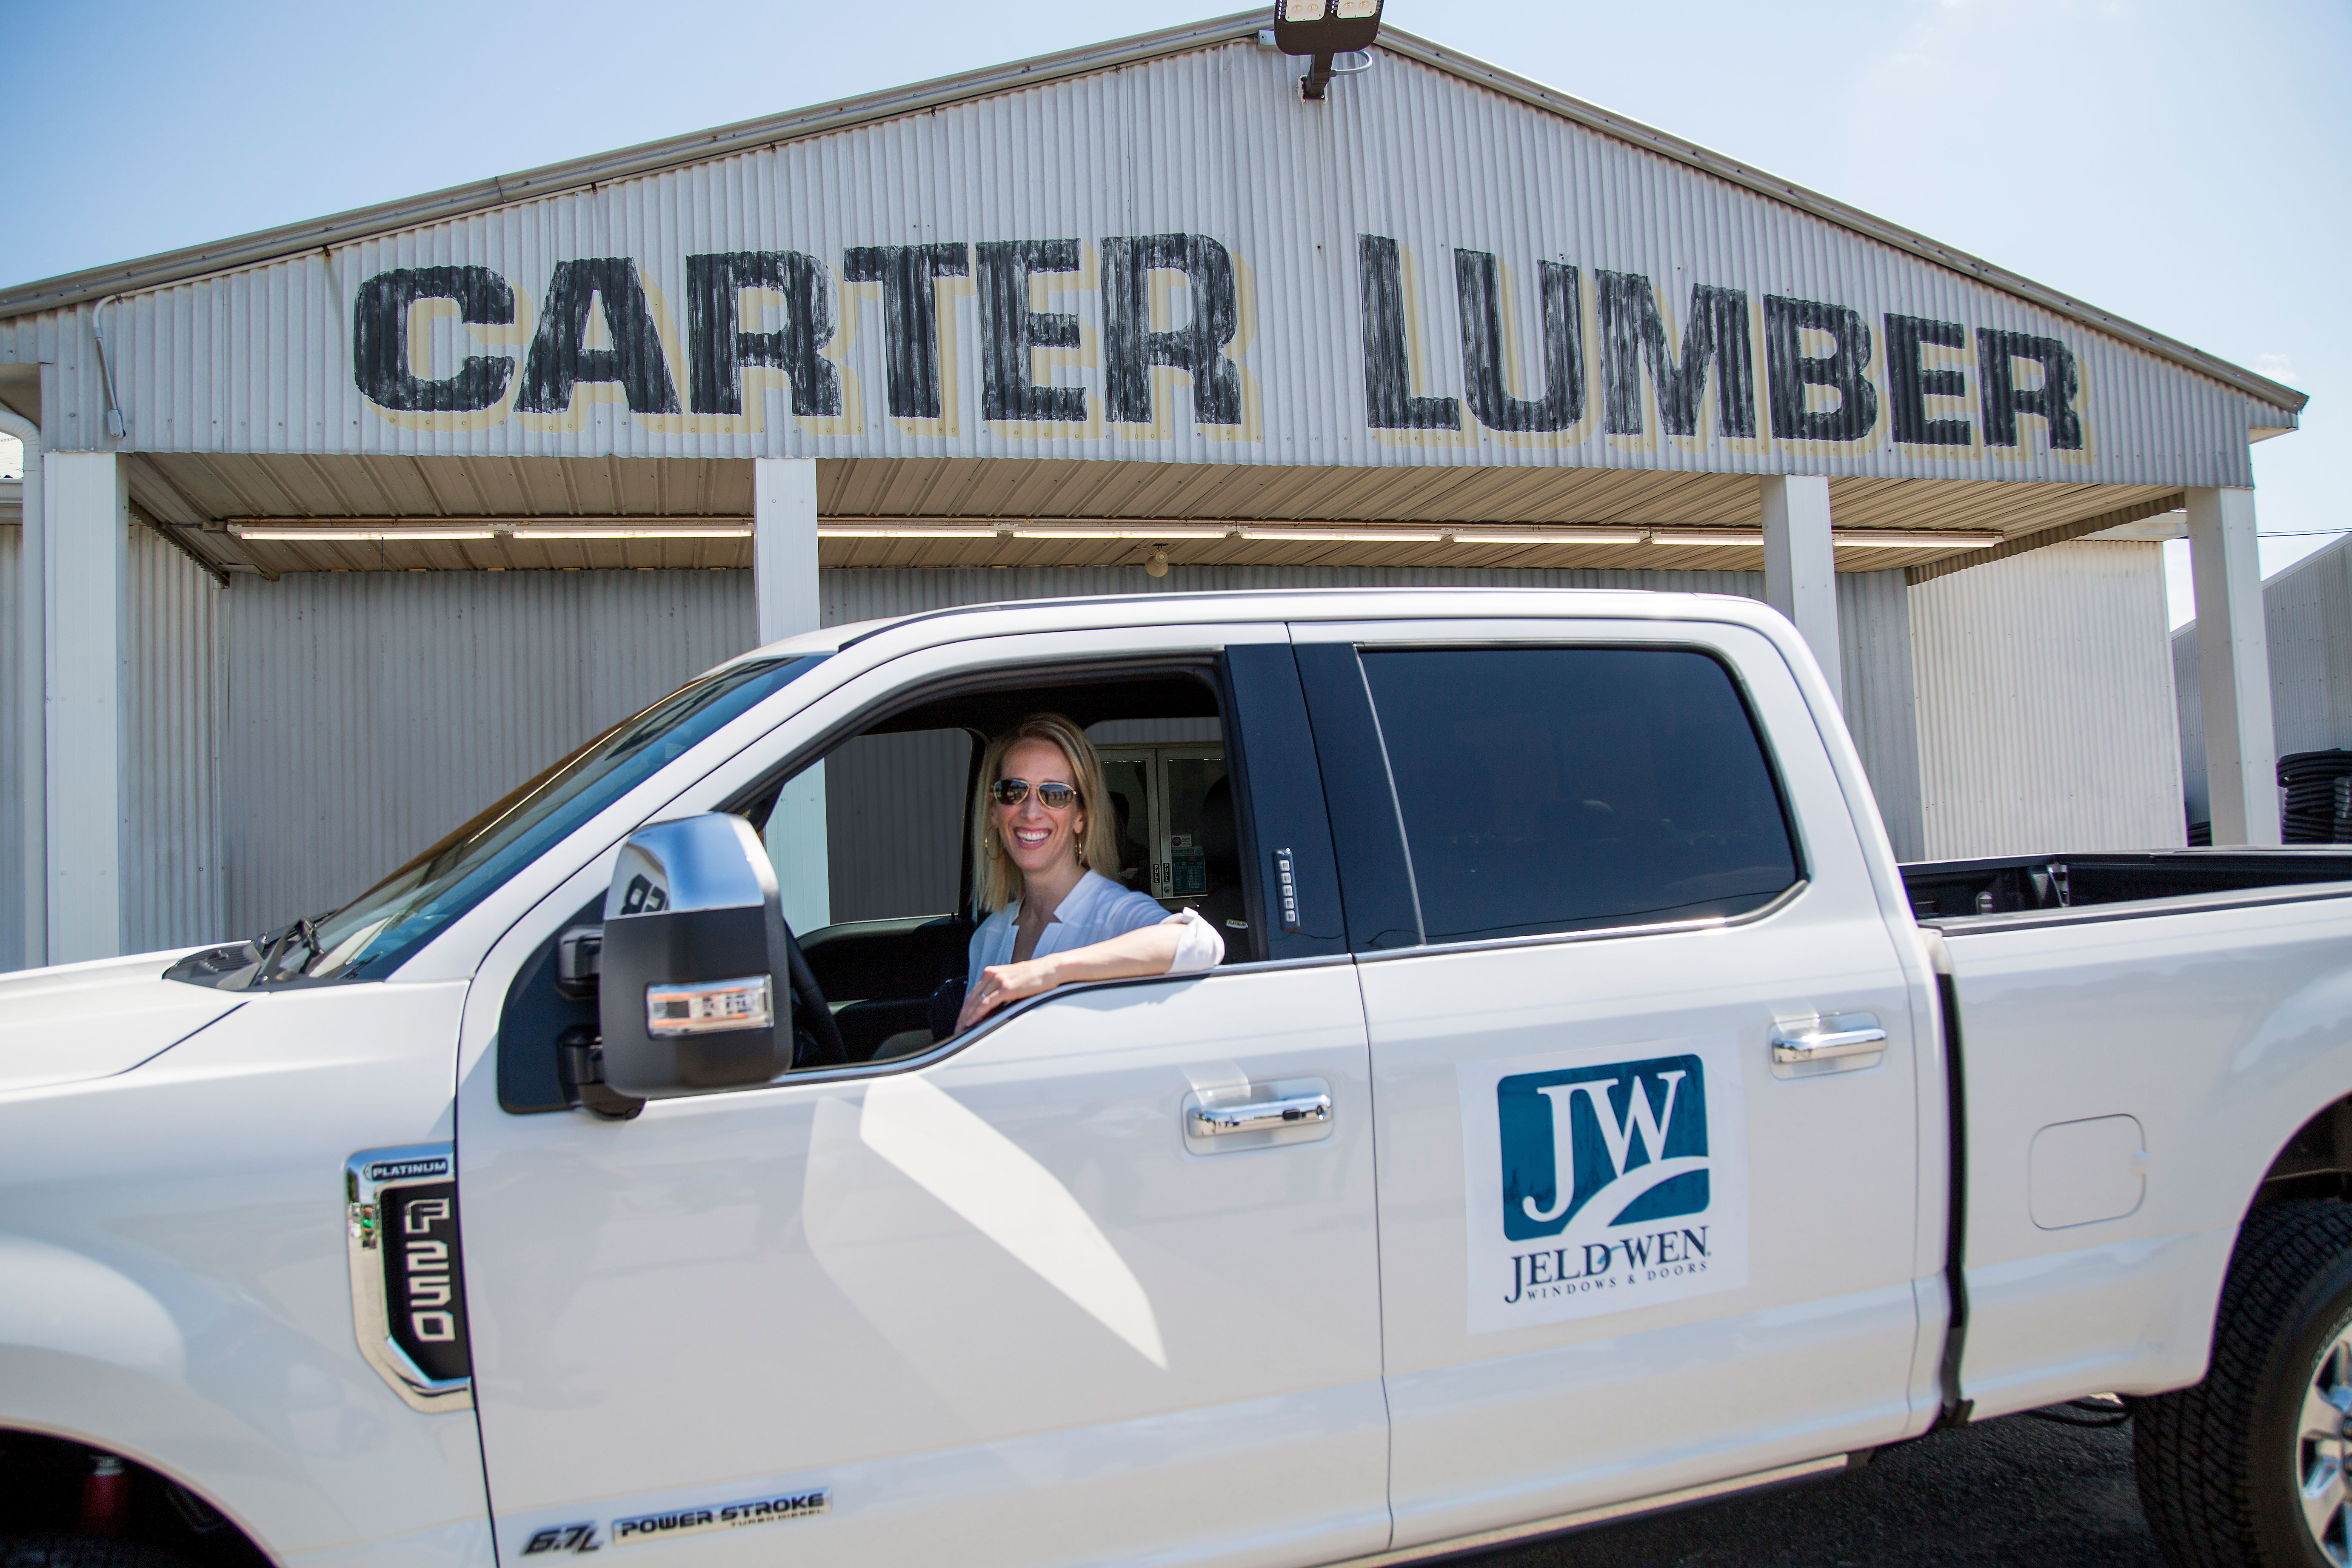 Don and Lisa Anderson get to drive a new Ford F-250 Super Duty for the next two years after winning a JELD-WEN national contest. (Photo: Business Wire)